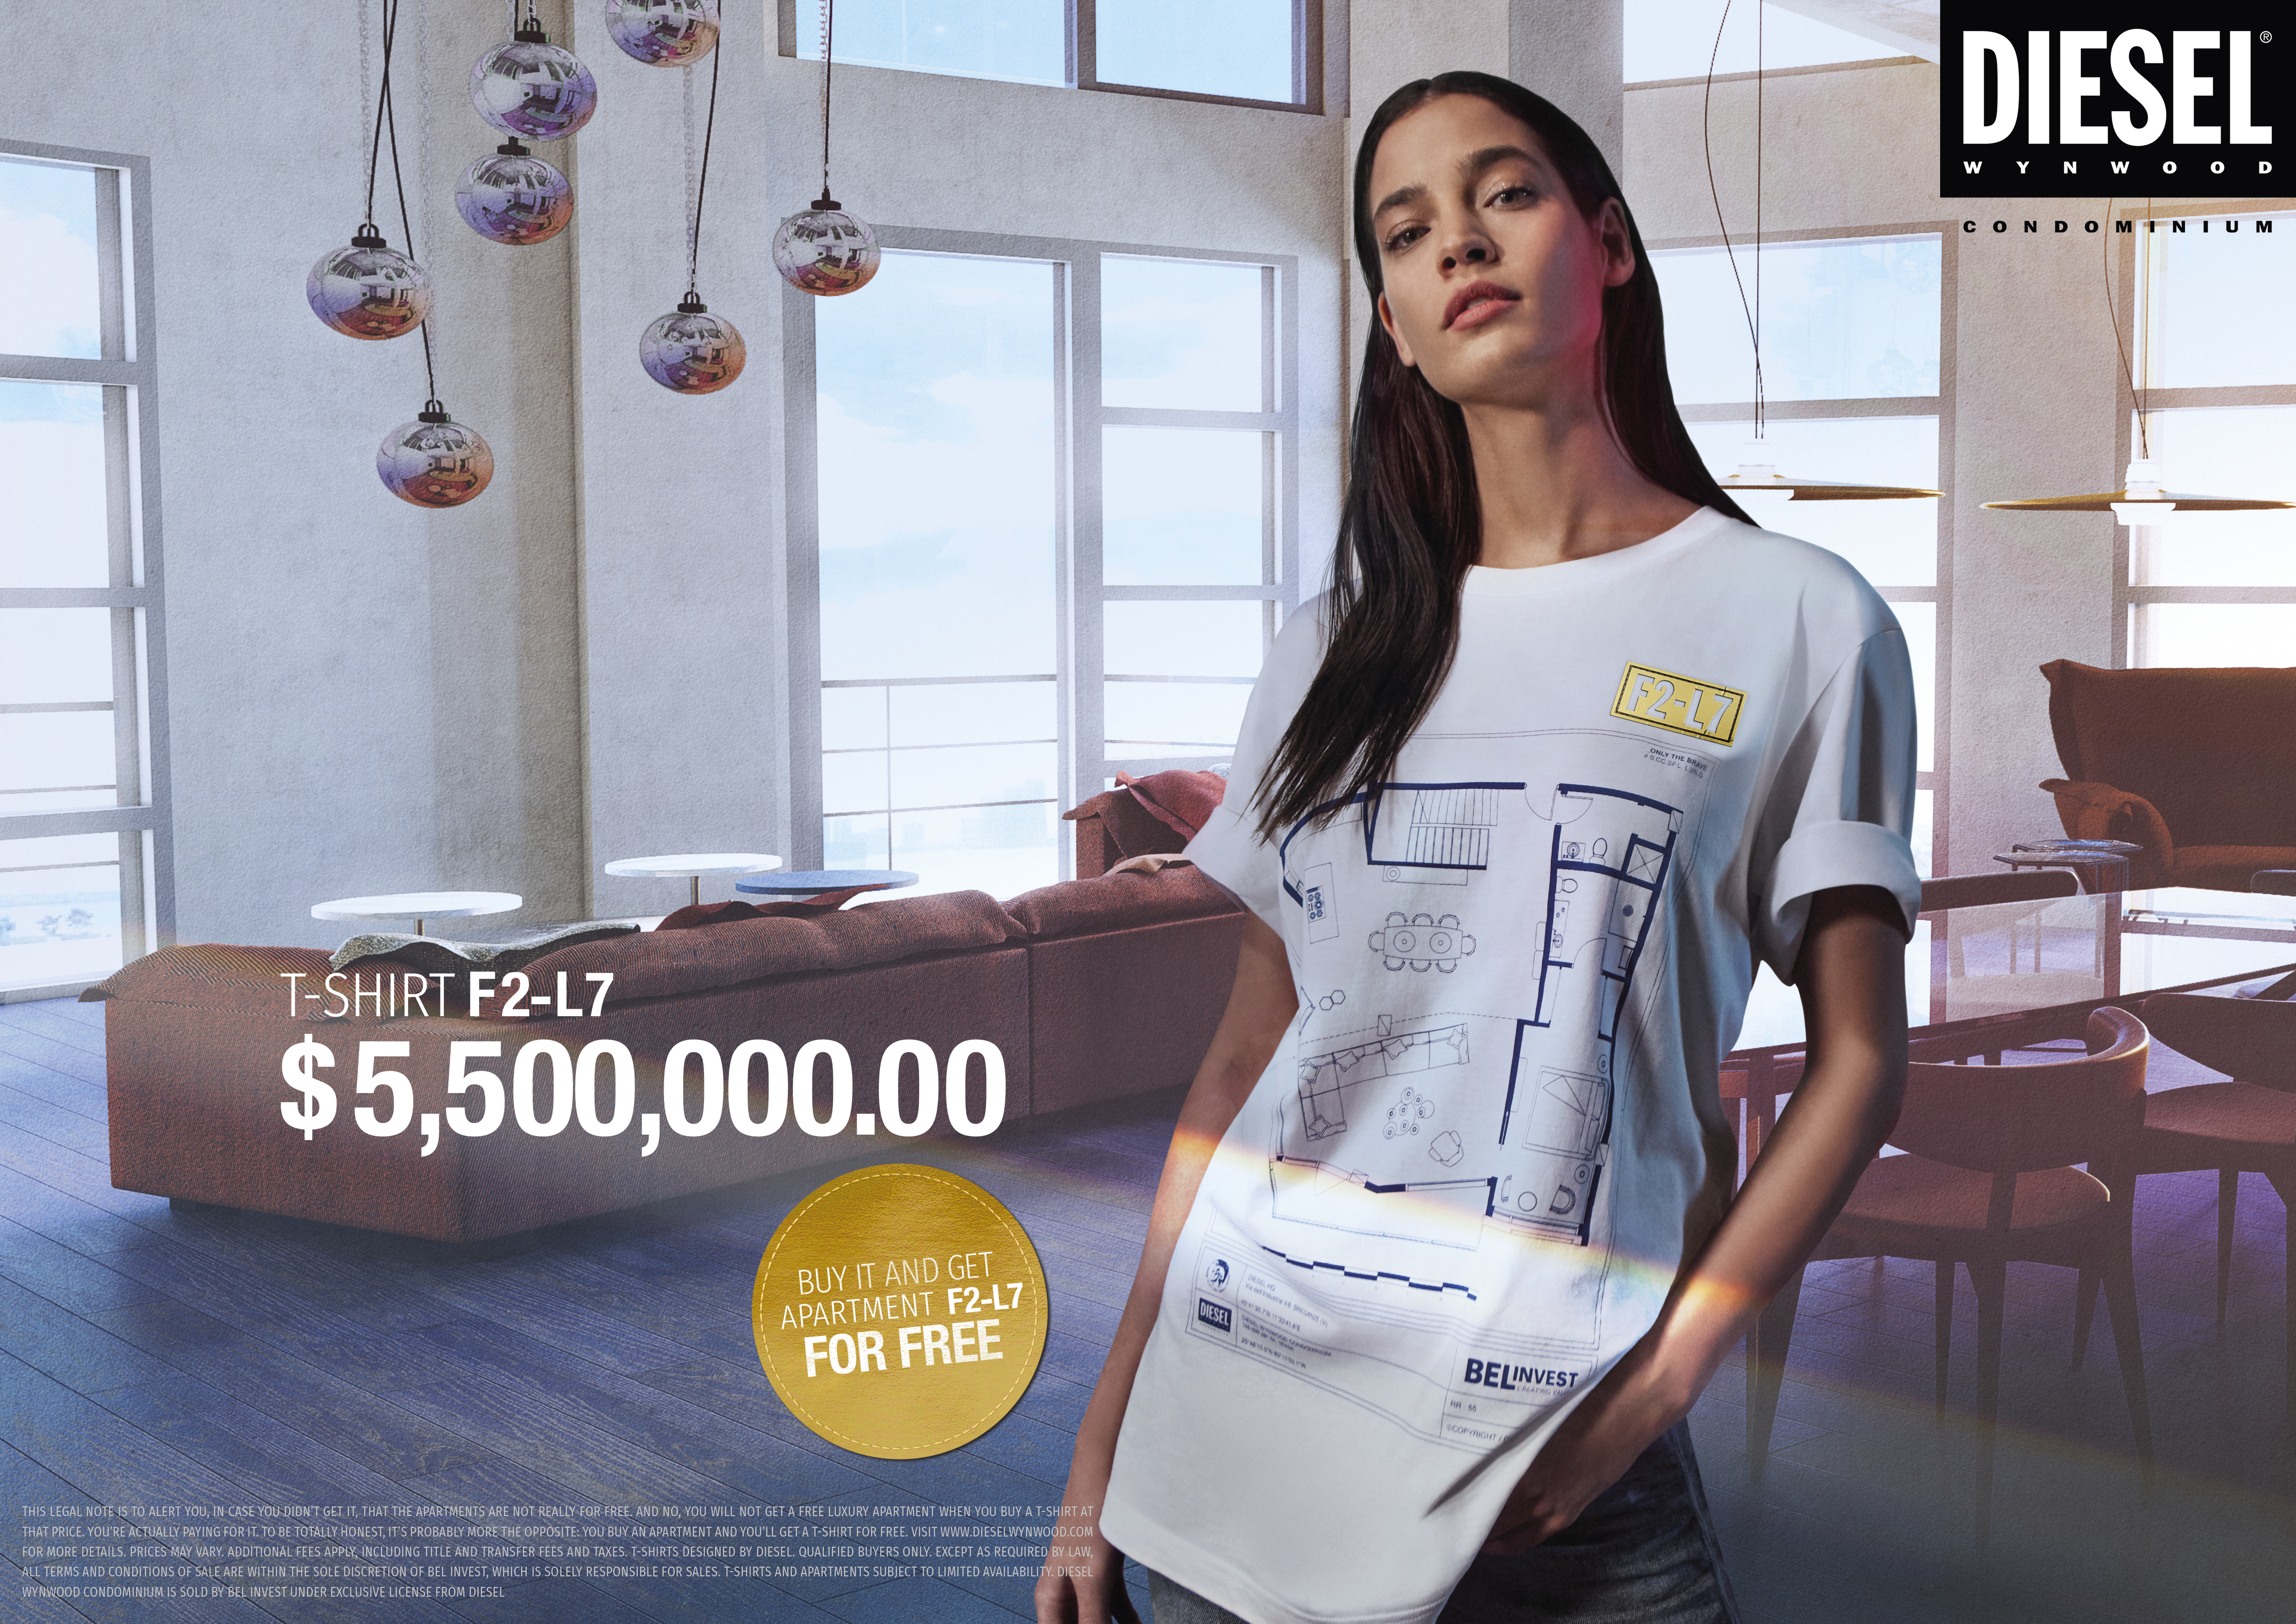 Diesel Uses T-Shirts to Promote New Miami Luxury Condos